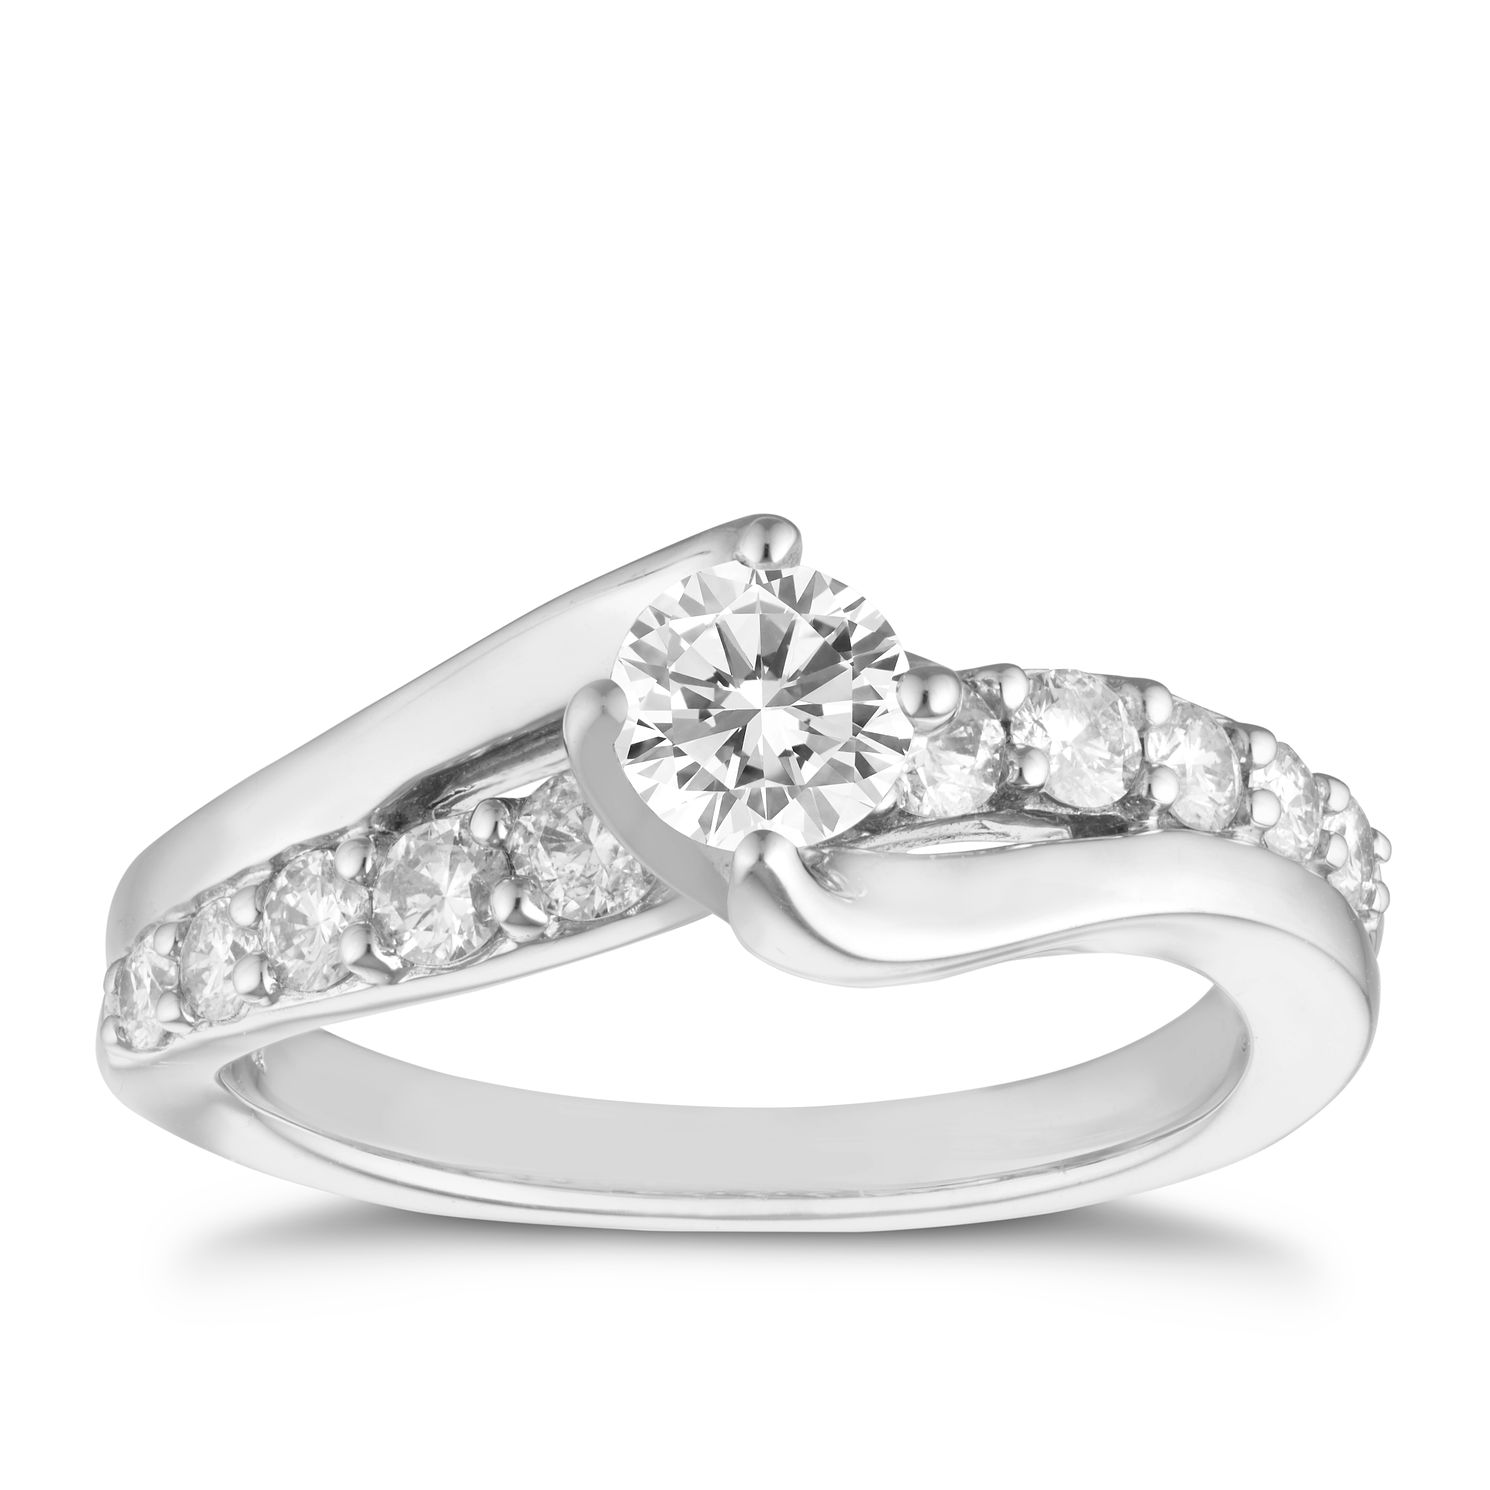 18ct White Gold 1ct Diamond Solitaire Ring - Product number 8007977